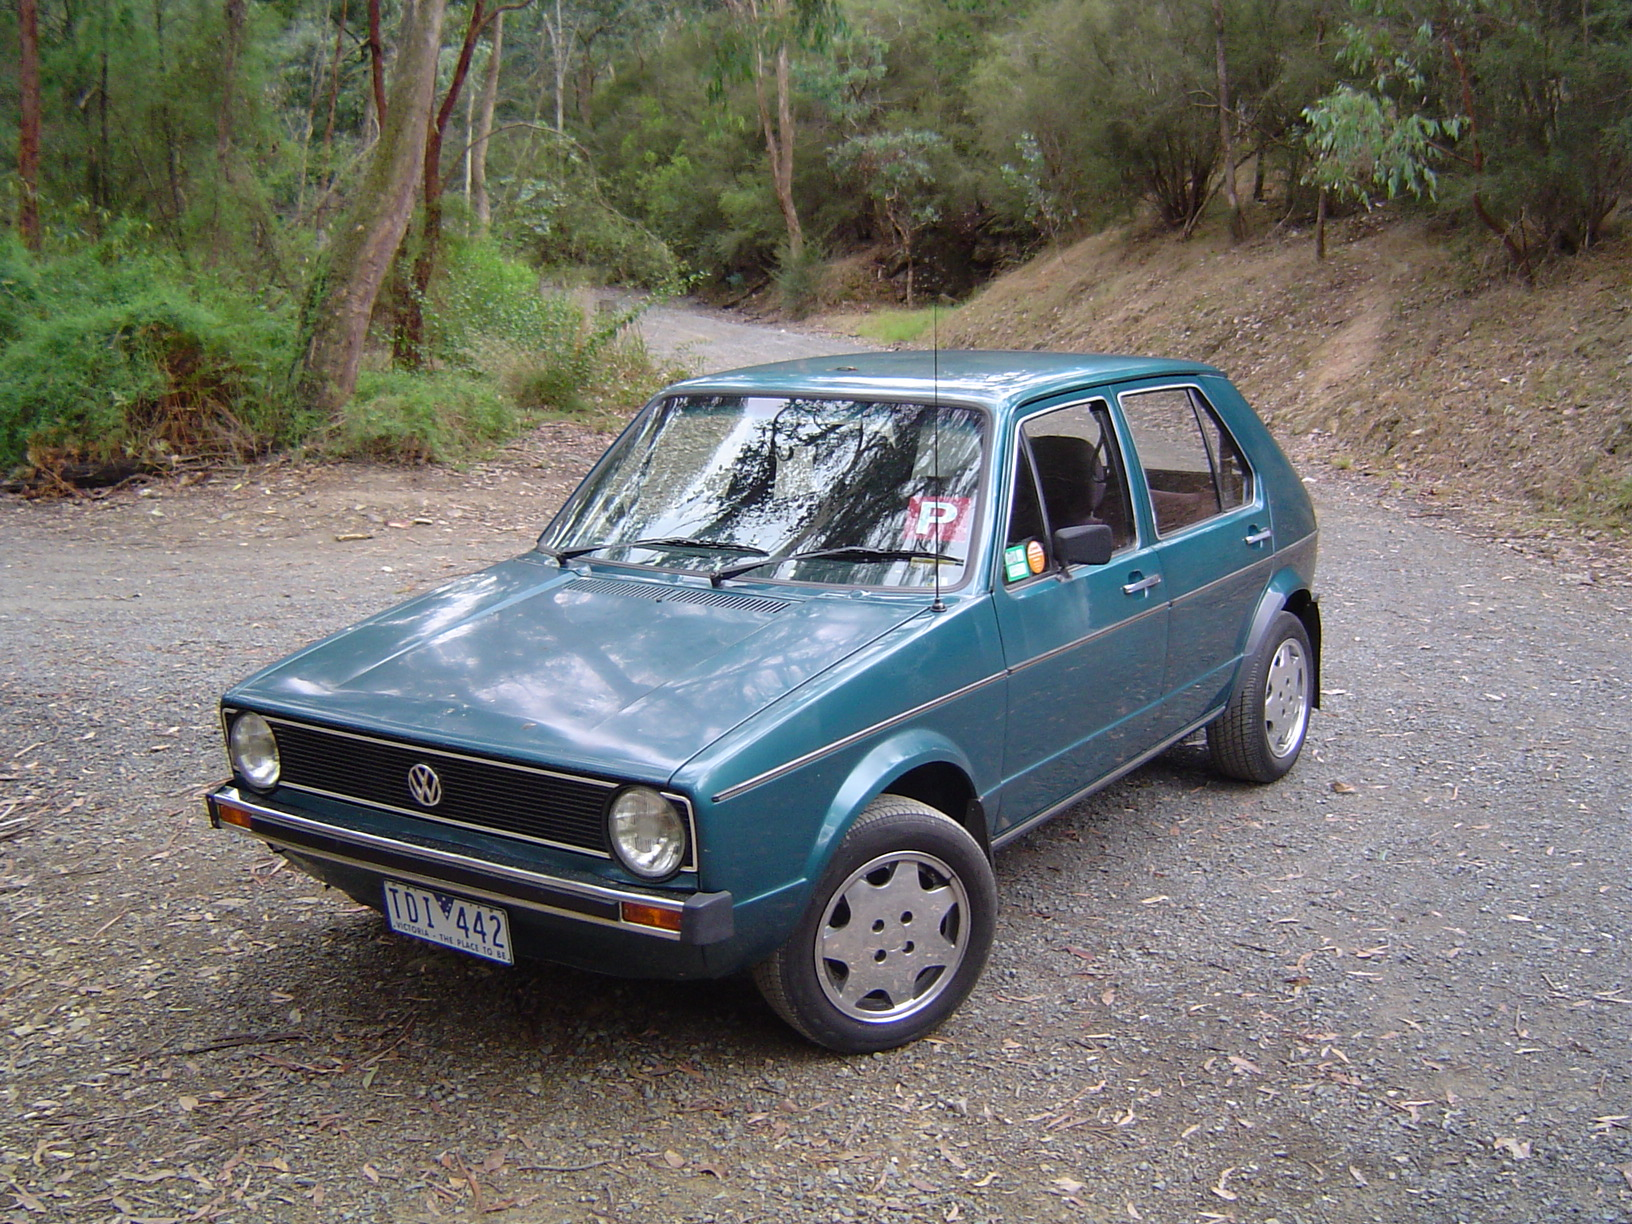 Carson Chevy File:Vw golf 1976.JPG - Wikimedia Commons